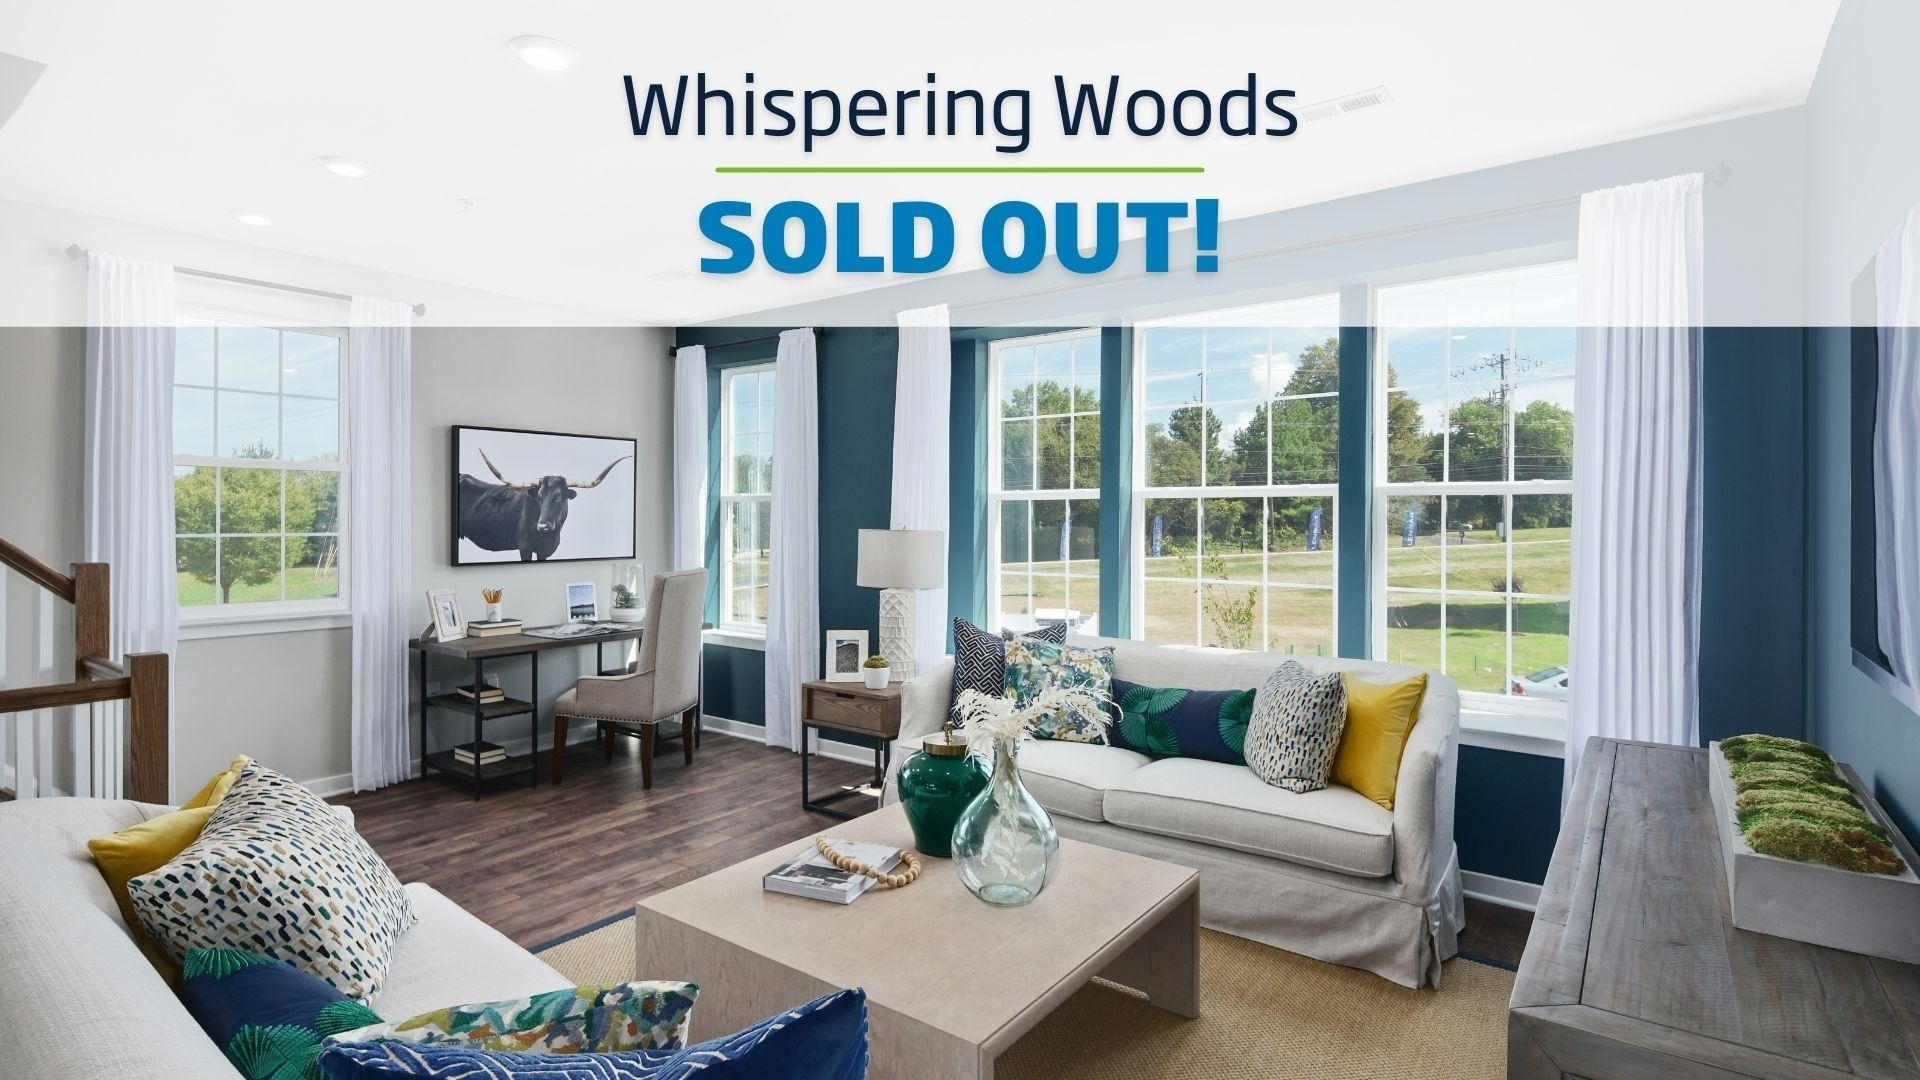 Whispering Woods is Sold Out